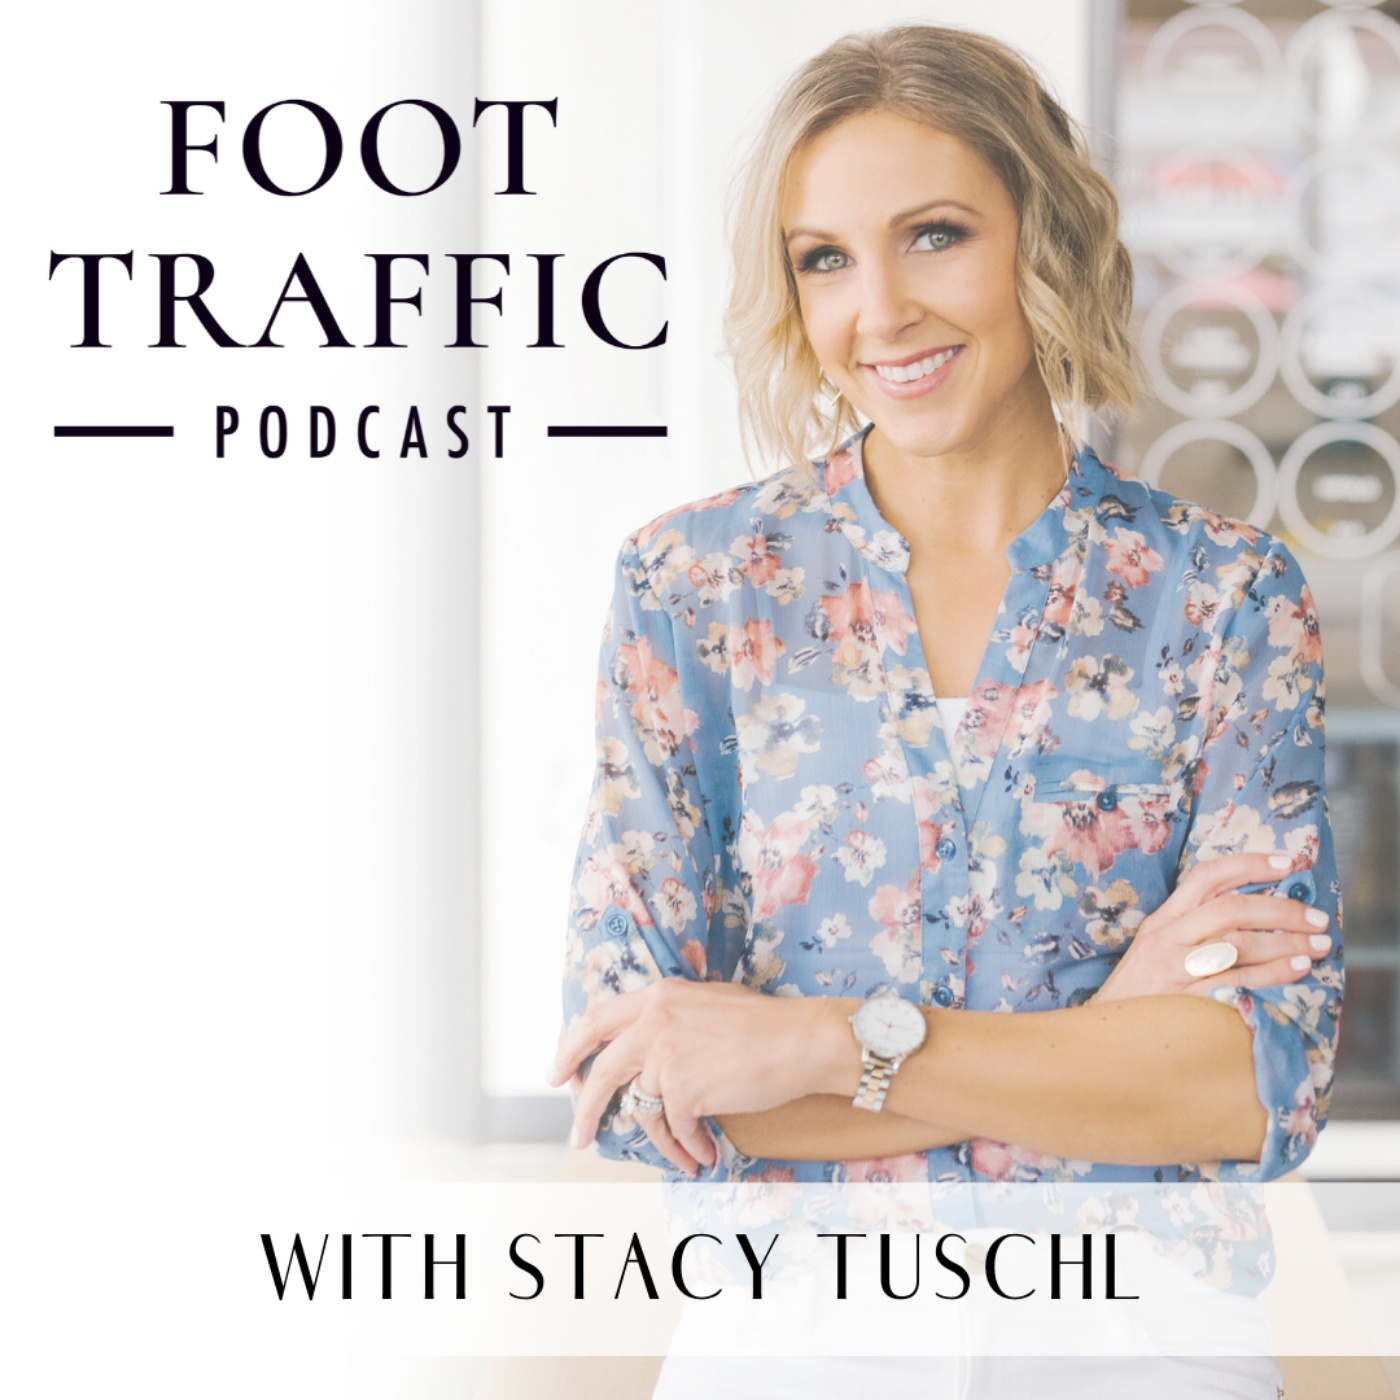 Foot Traffic Podcast show art